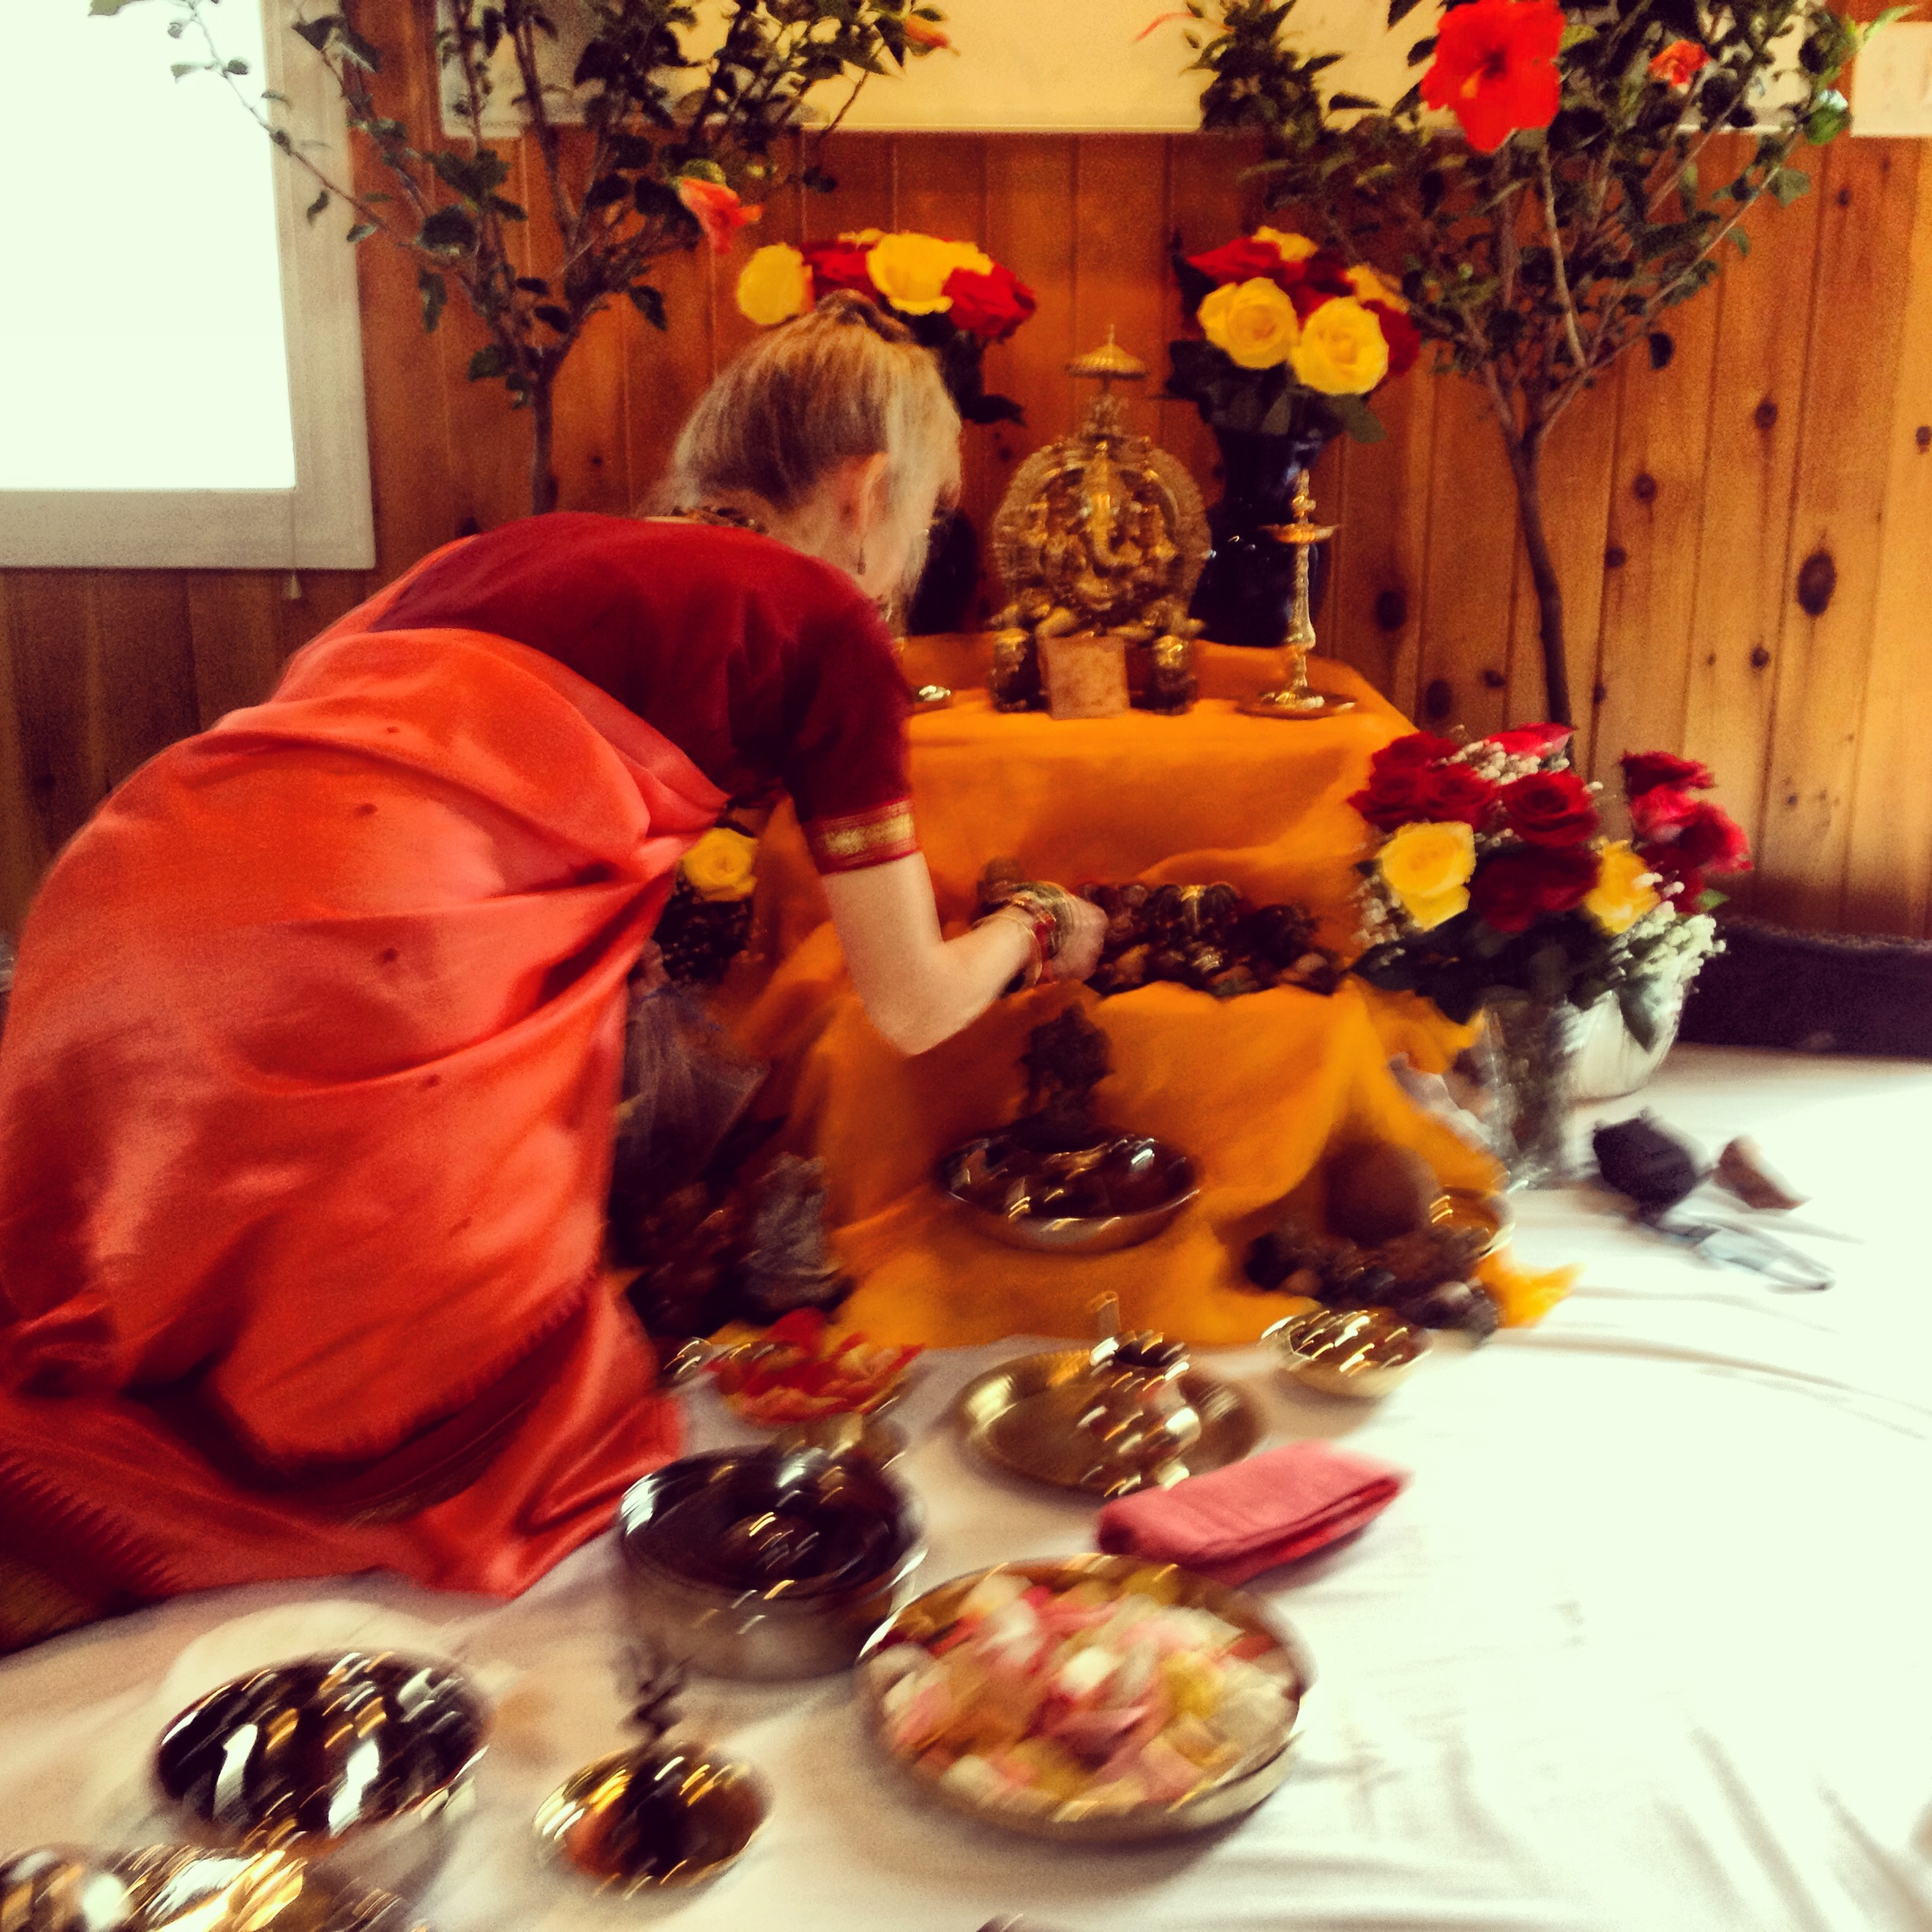 Ganesha Puja with Dr. Lad, photo by Maré Hieronimus